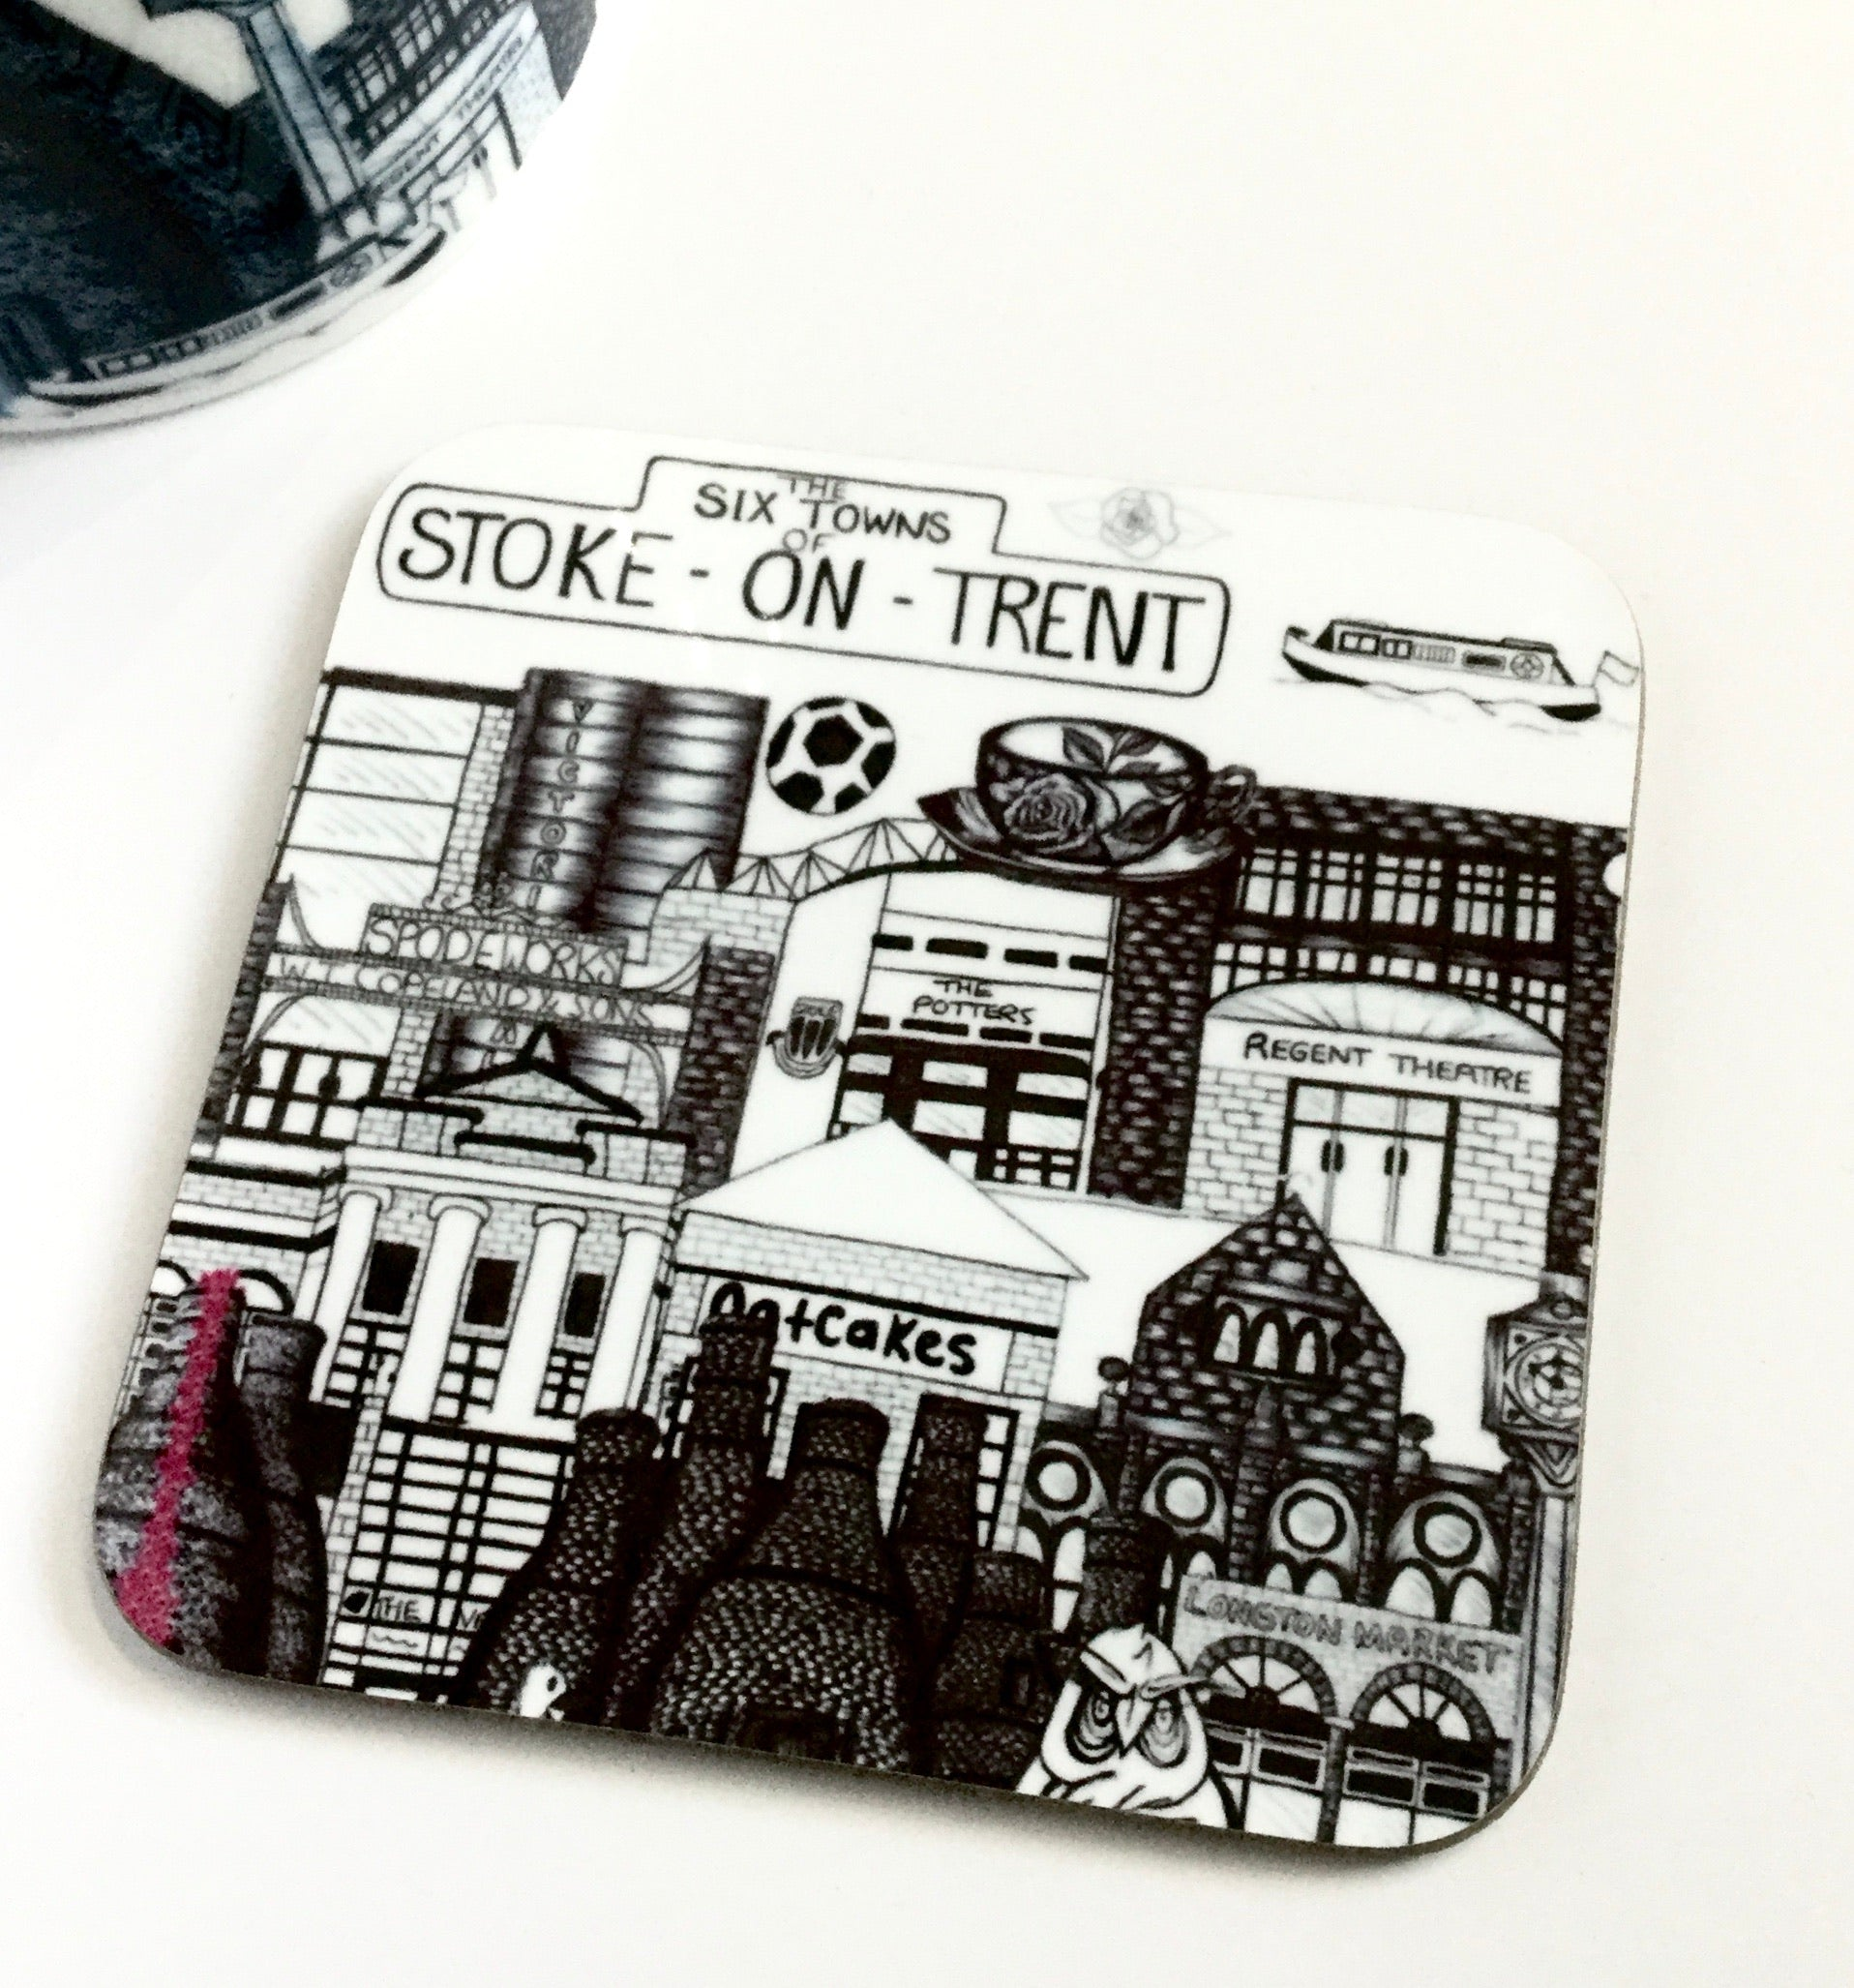 Megan Rose Design The Six Towns of Stoke-on-Trent Coaster